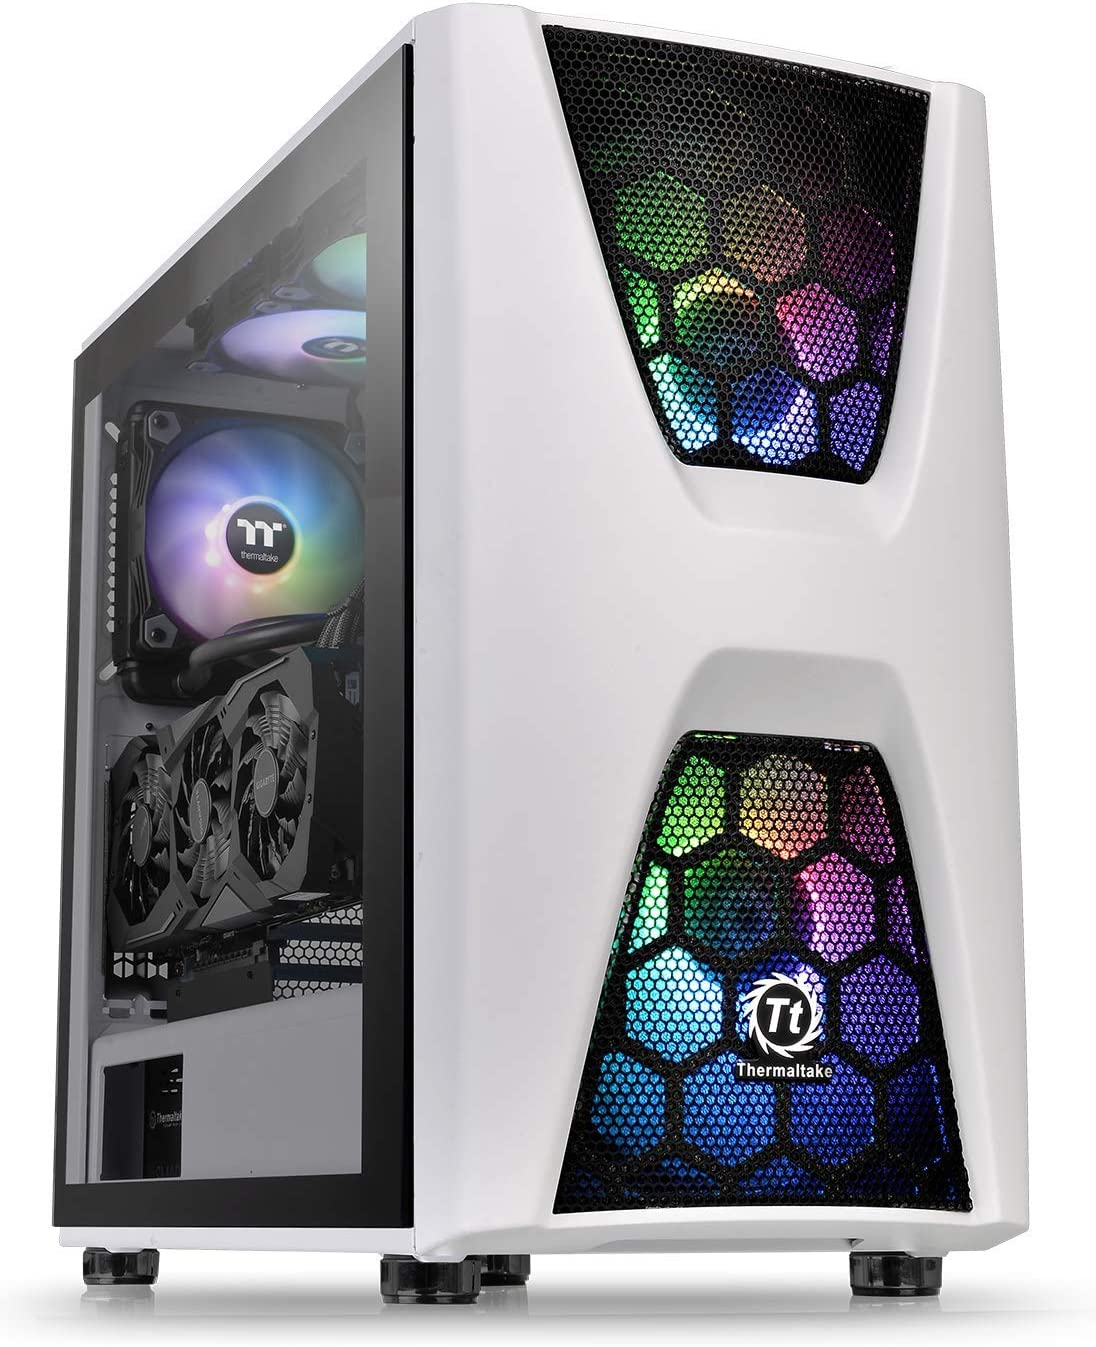 Thermaltake Commander C36 Motherboard Sync ARGB ATX Mid Tower Computer Chassis with 2 200mm ARGB 5V Motherboard Sync RGB Front Fans 1 120mm Rear Black Fan Pre-Installed CA-1N7-00M1WN-00